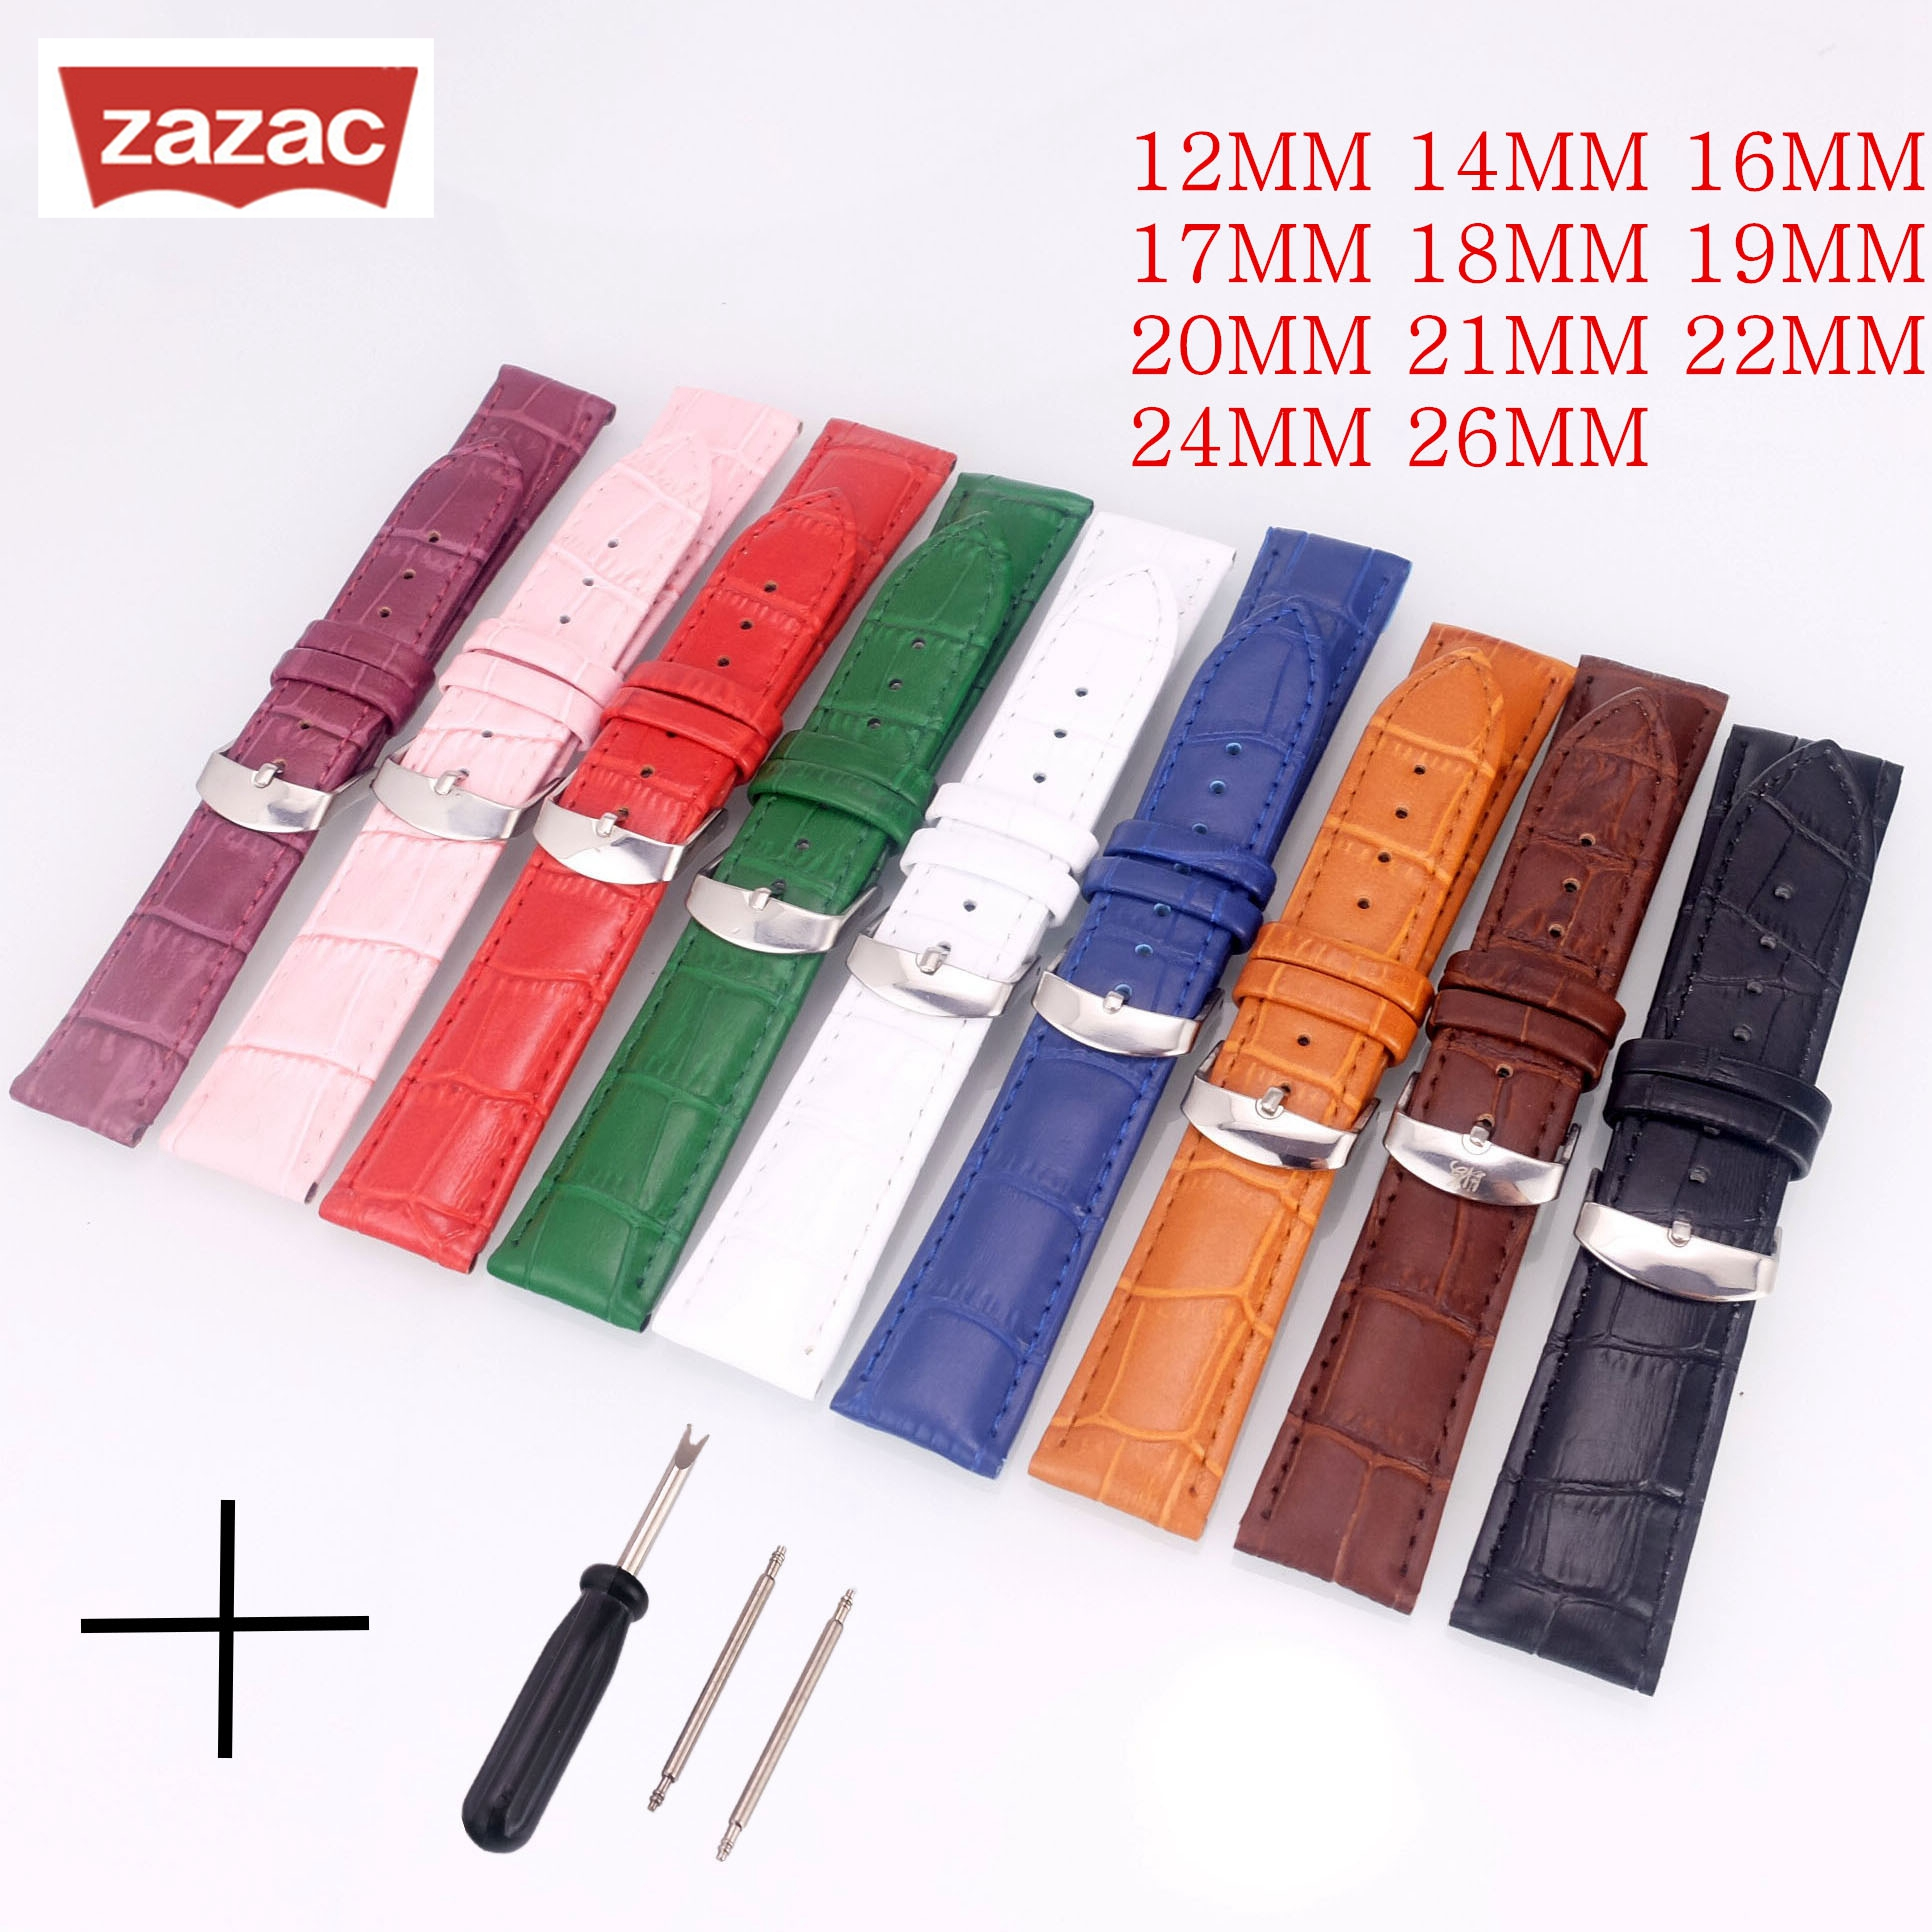 Leather Watches Band Strap 12-26mm 16mm 18mm 19mm 20mm 22mm Brown Pink White Green Black Blue Woman Man Watchbands Watch Belts strap 18mm 20mm 22mm 24mm 26mm vintage leather fashion watch band watch men strap man watches straps black brown blue